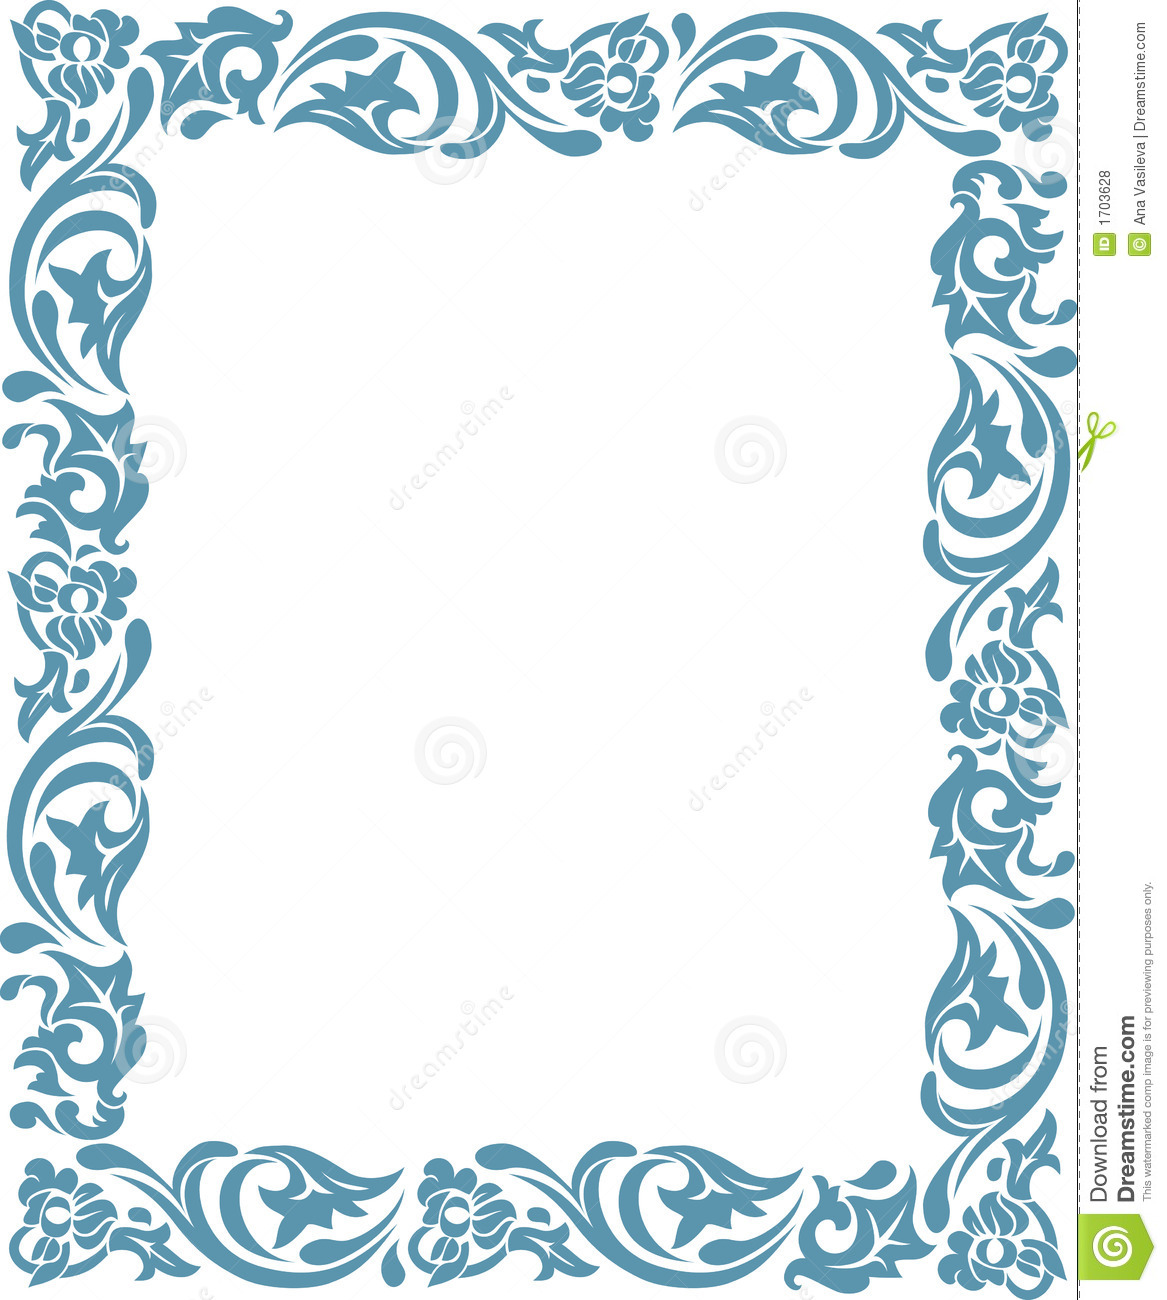 Frame With Floral Ornaments Stock Vector - Illustration of vector ...